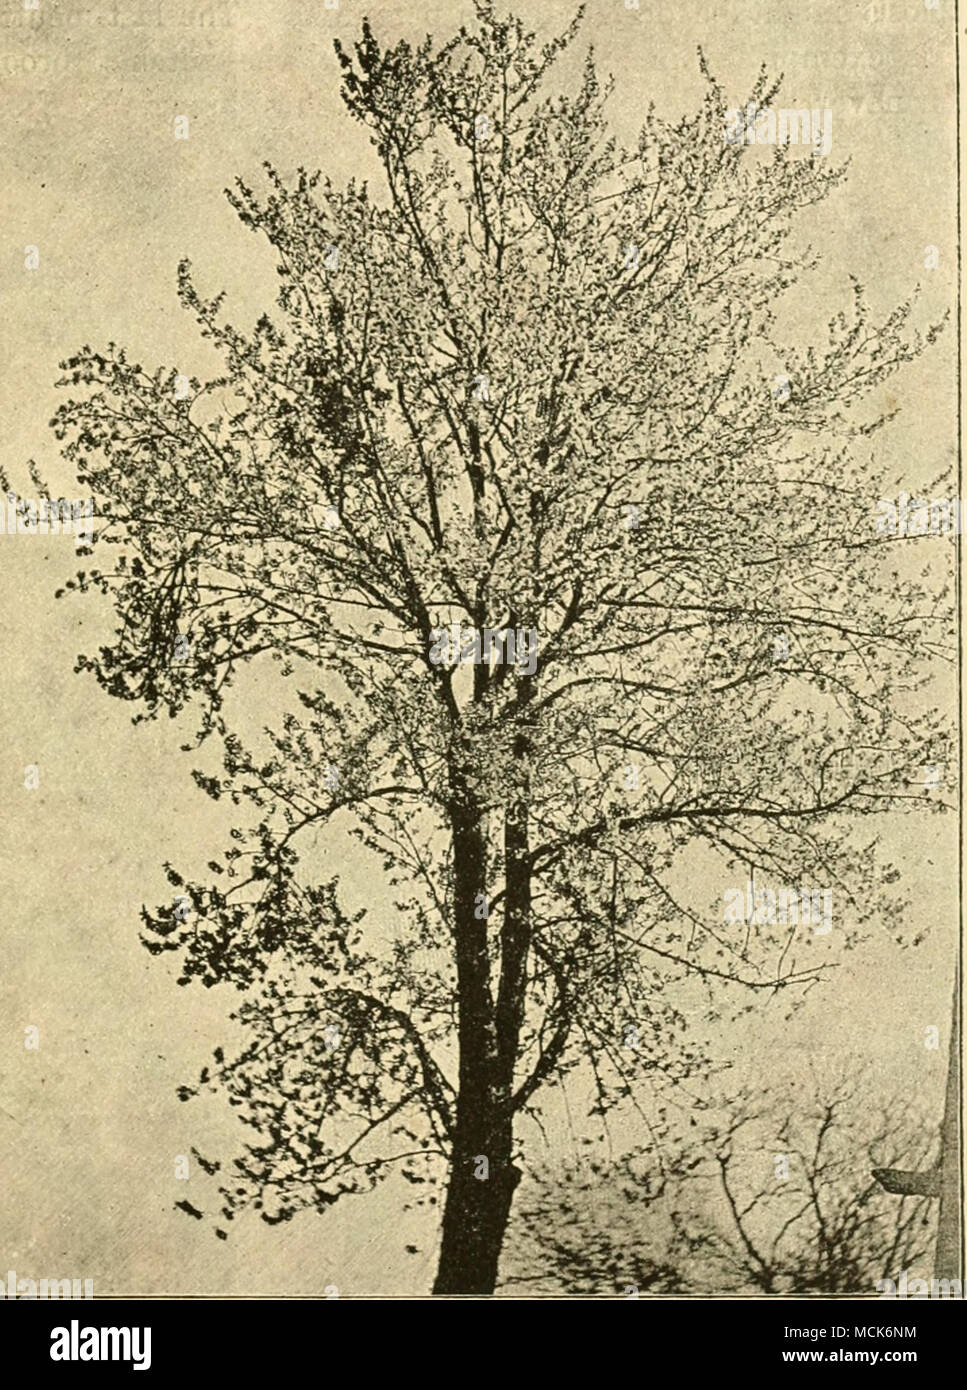 . Fn;. 5.—Clierrv tree in (v. Tubeuf phot.) stalked, green leaves, the stamens were reduced in number and there were no carpels. One case exhibited, in place of a flower, only two leaflets terminating the flower-peduncle, one of them palmately divided. - Stock Image